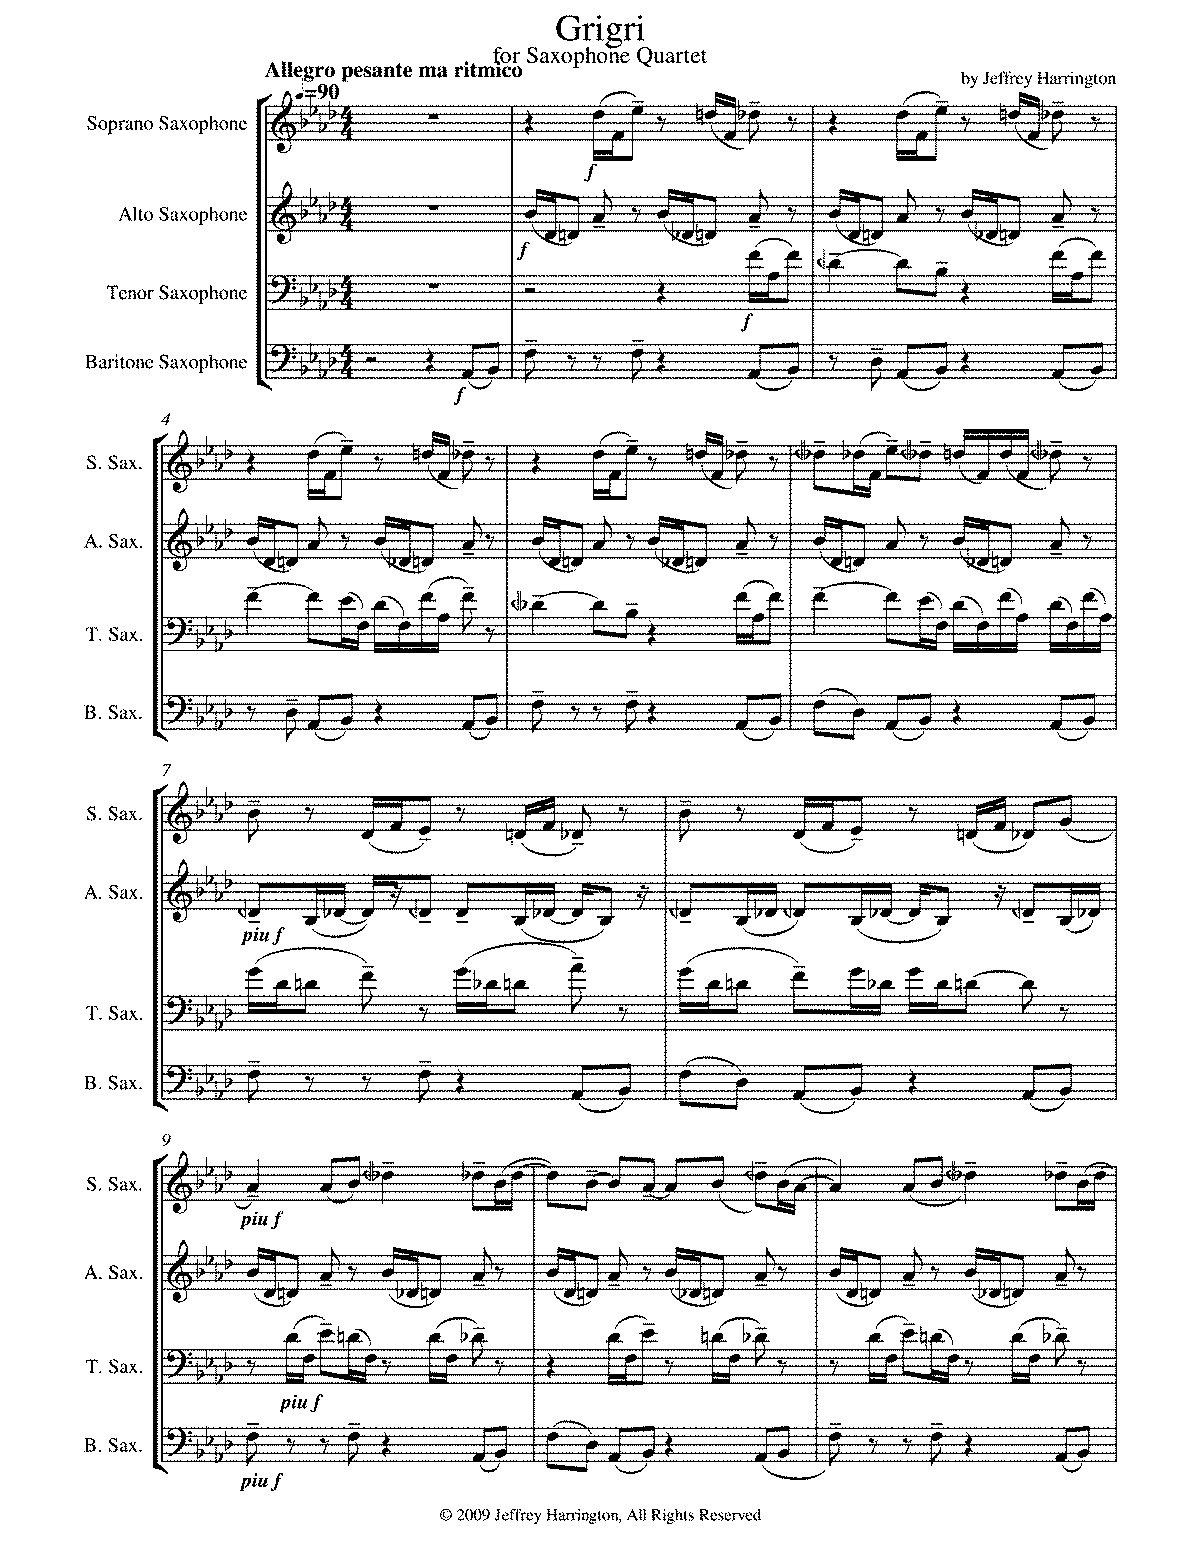 PMLP194320-grigri for sax quartet score.pdf